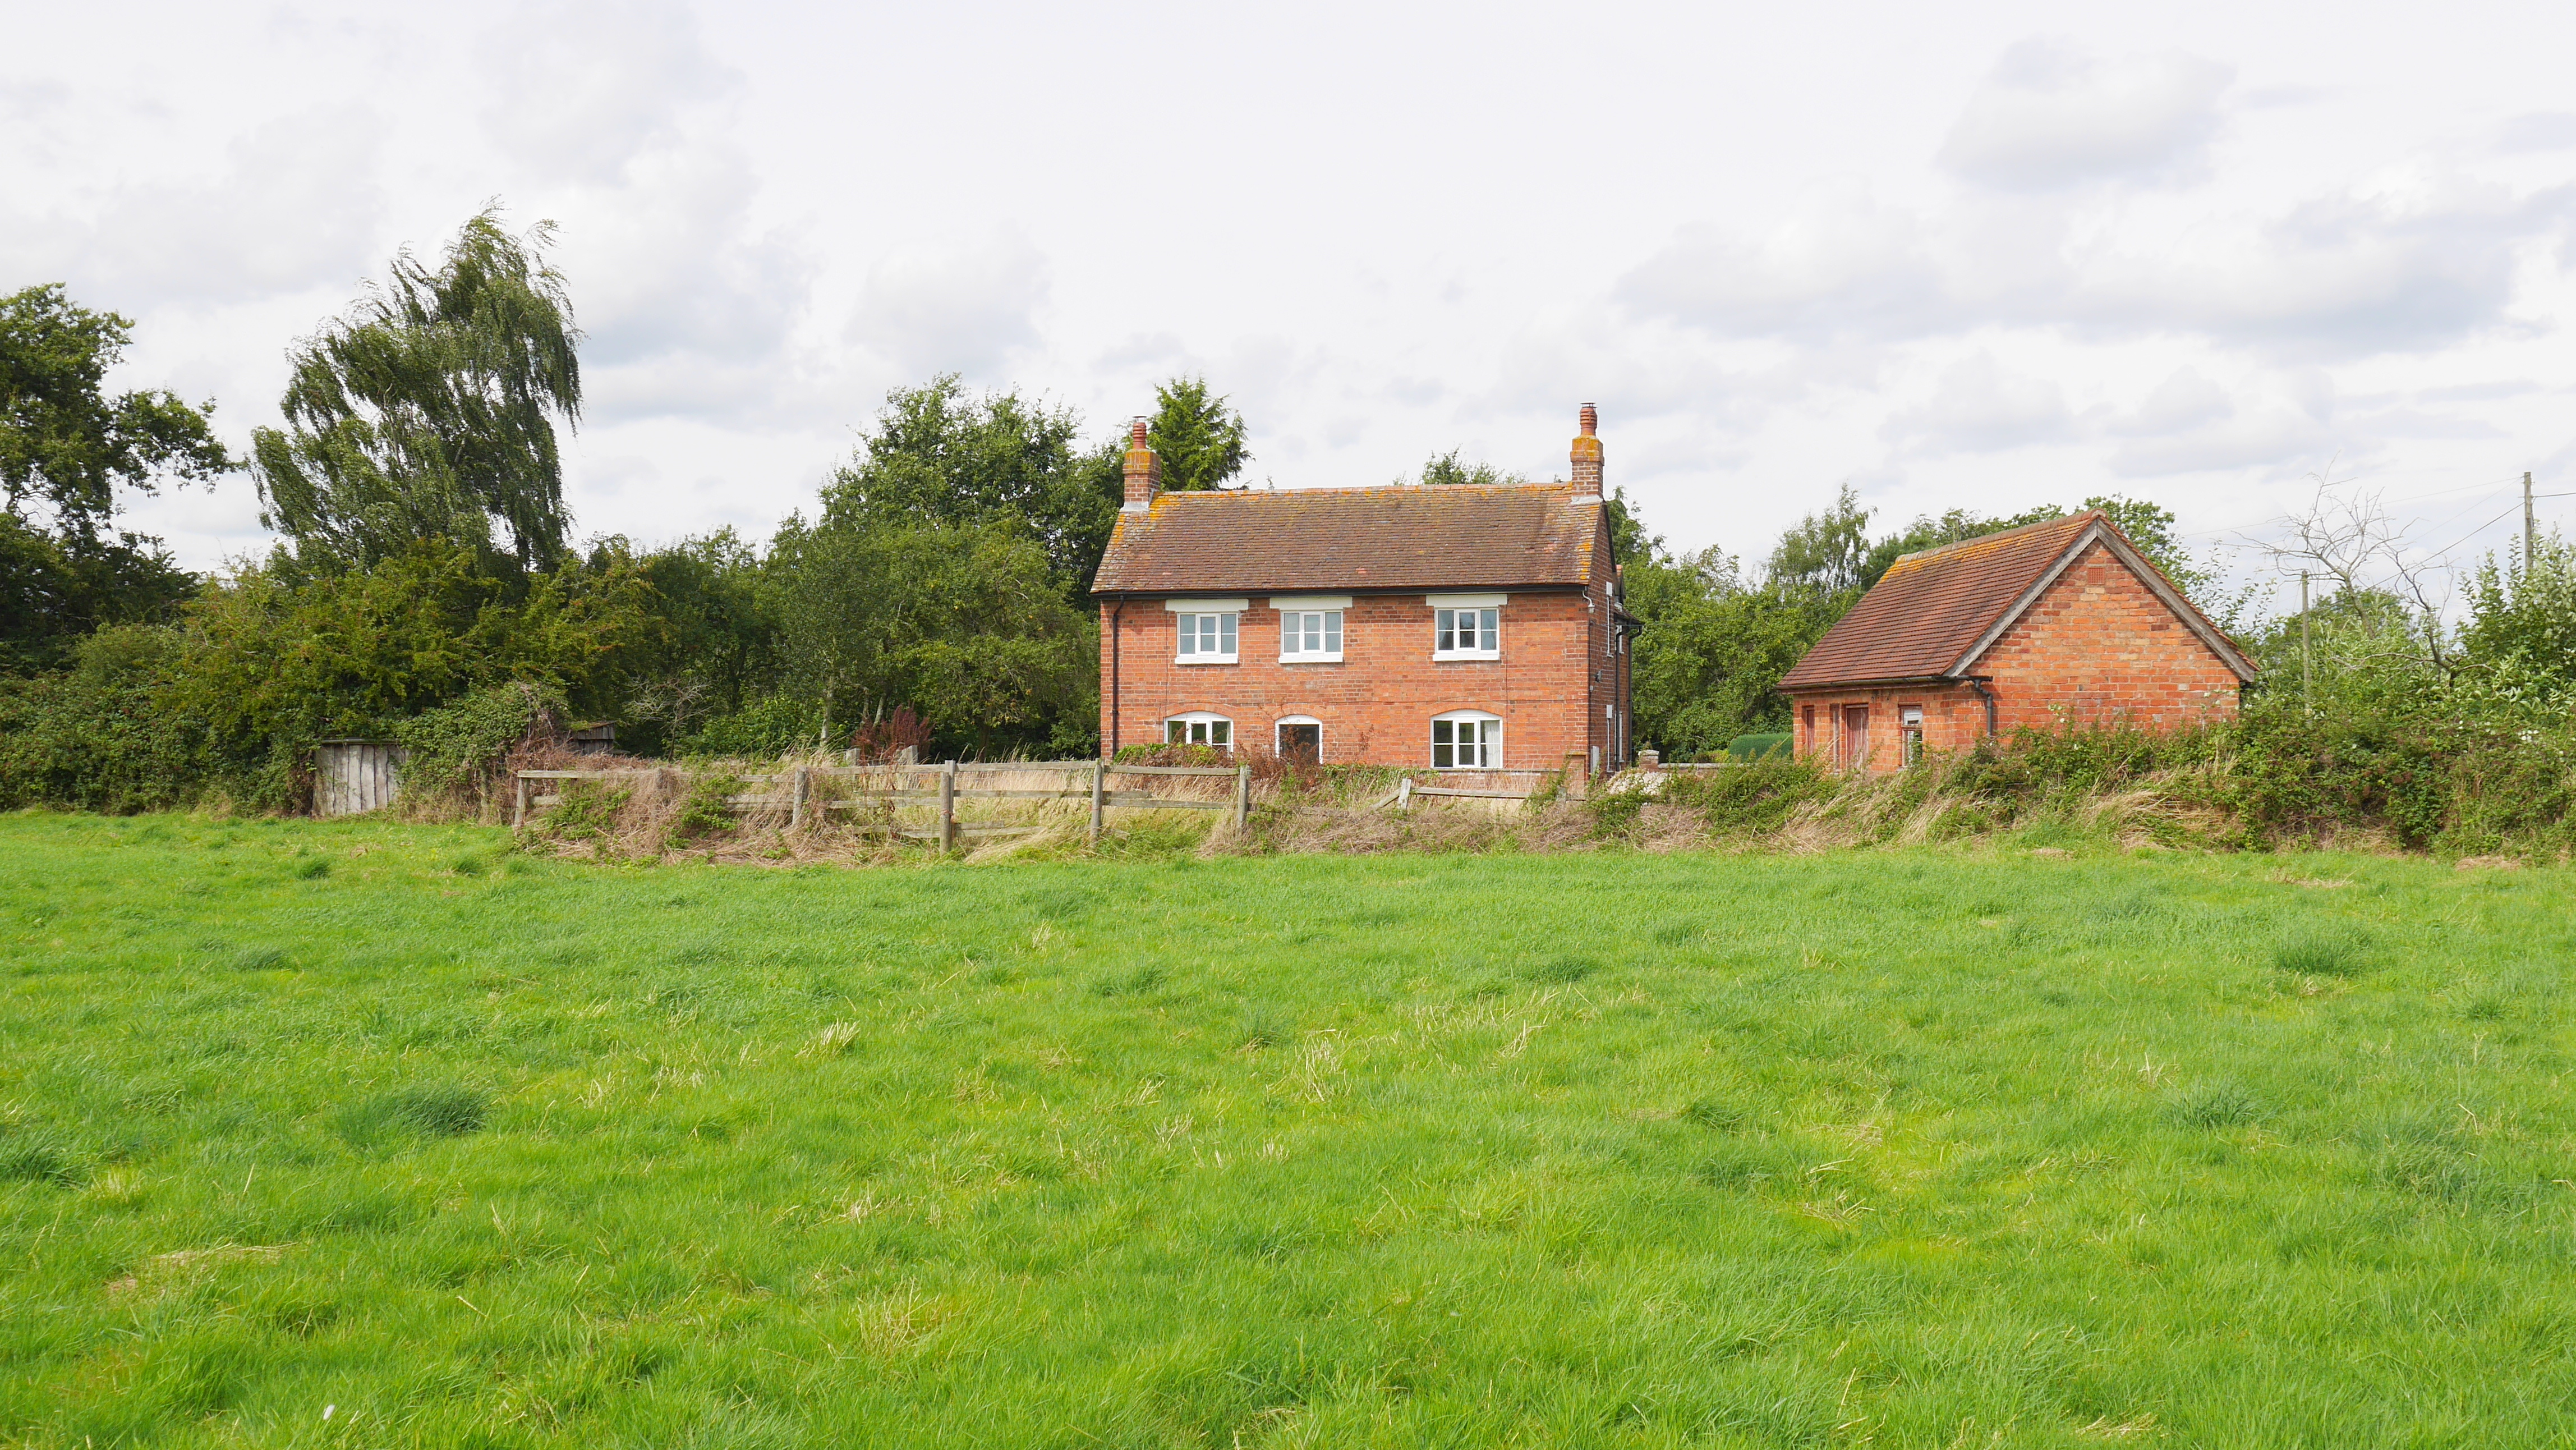 The Elms Smallholding, Stonehall Common, Nr Kempsey, WR5 3QQ